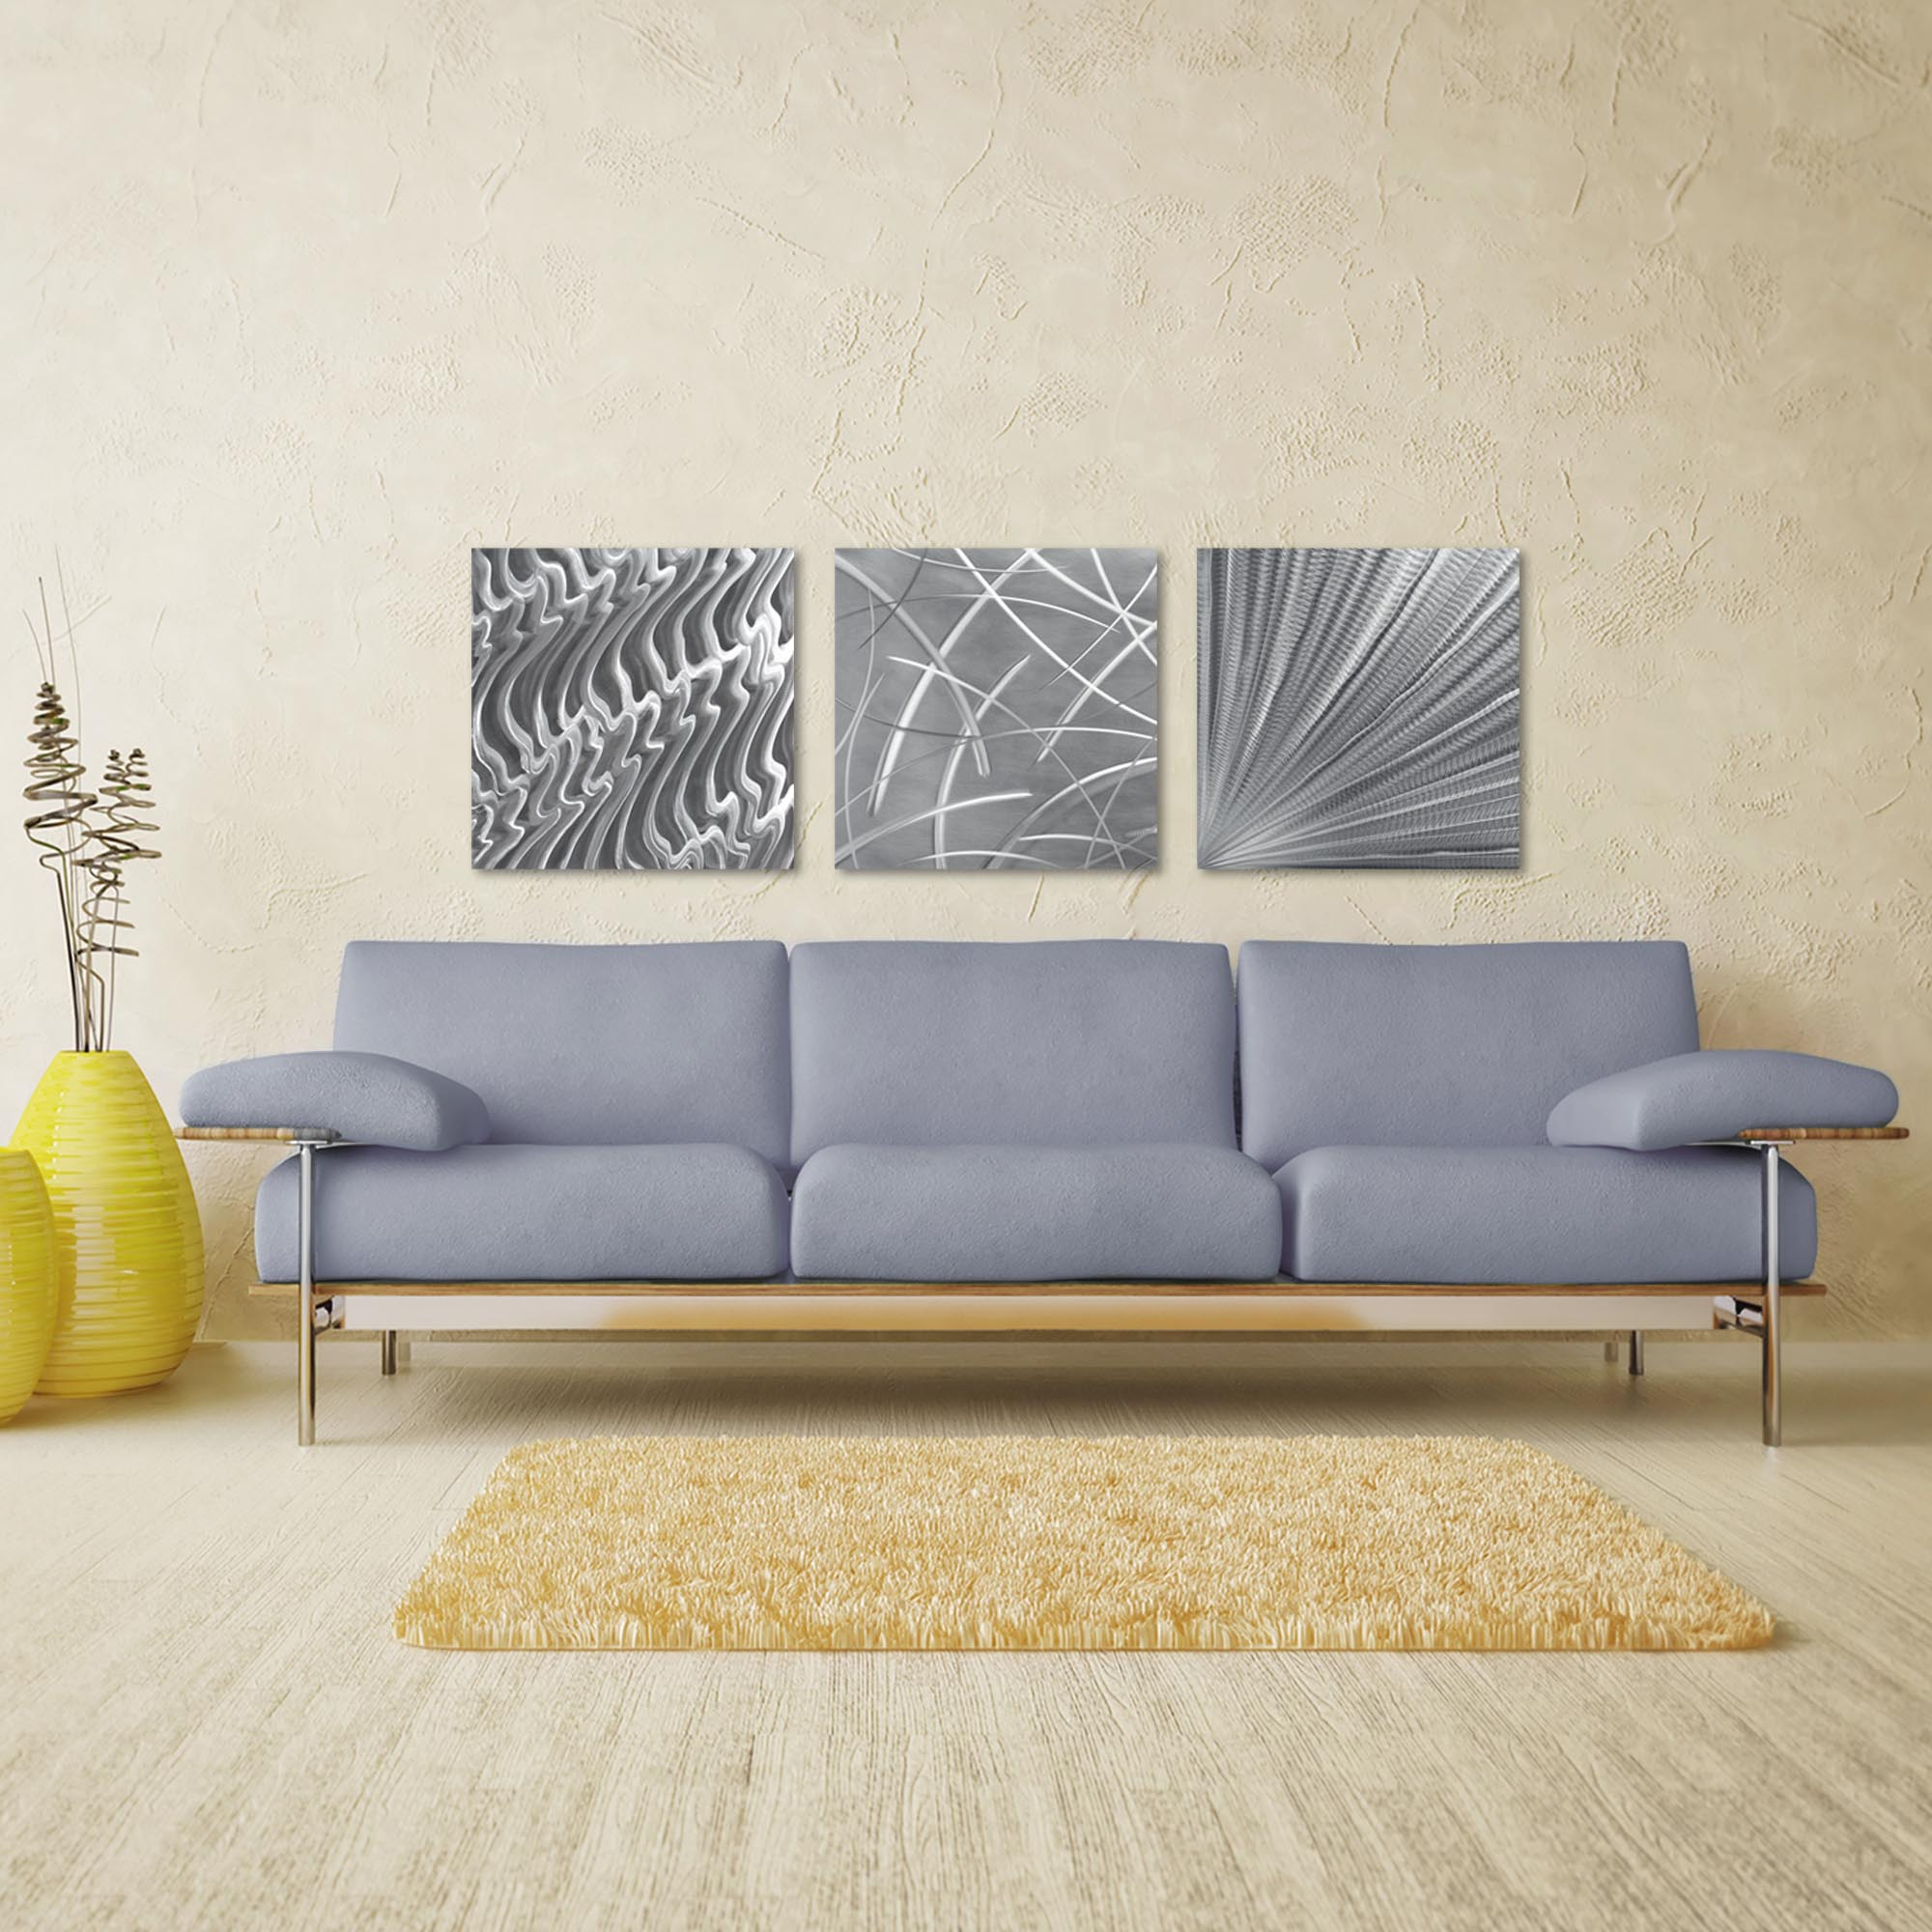 Countless v2 Triptych Large 70x22in. Metal or Acrylic Contemporary Decor - Lifestyle View